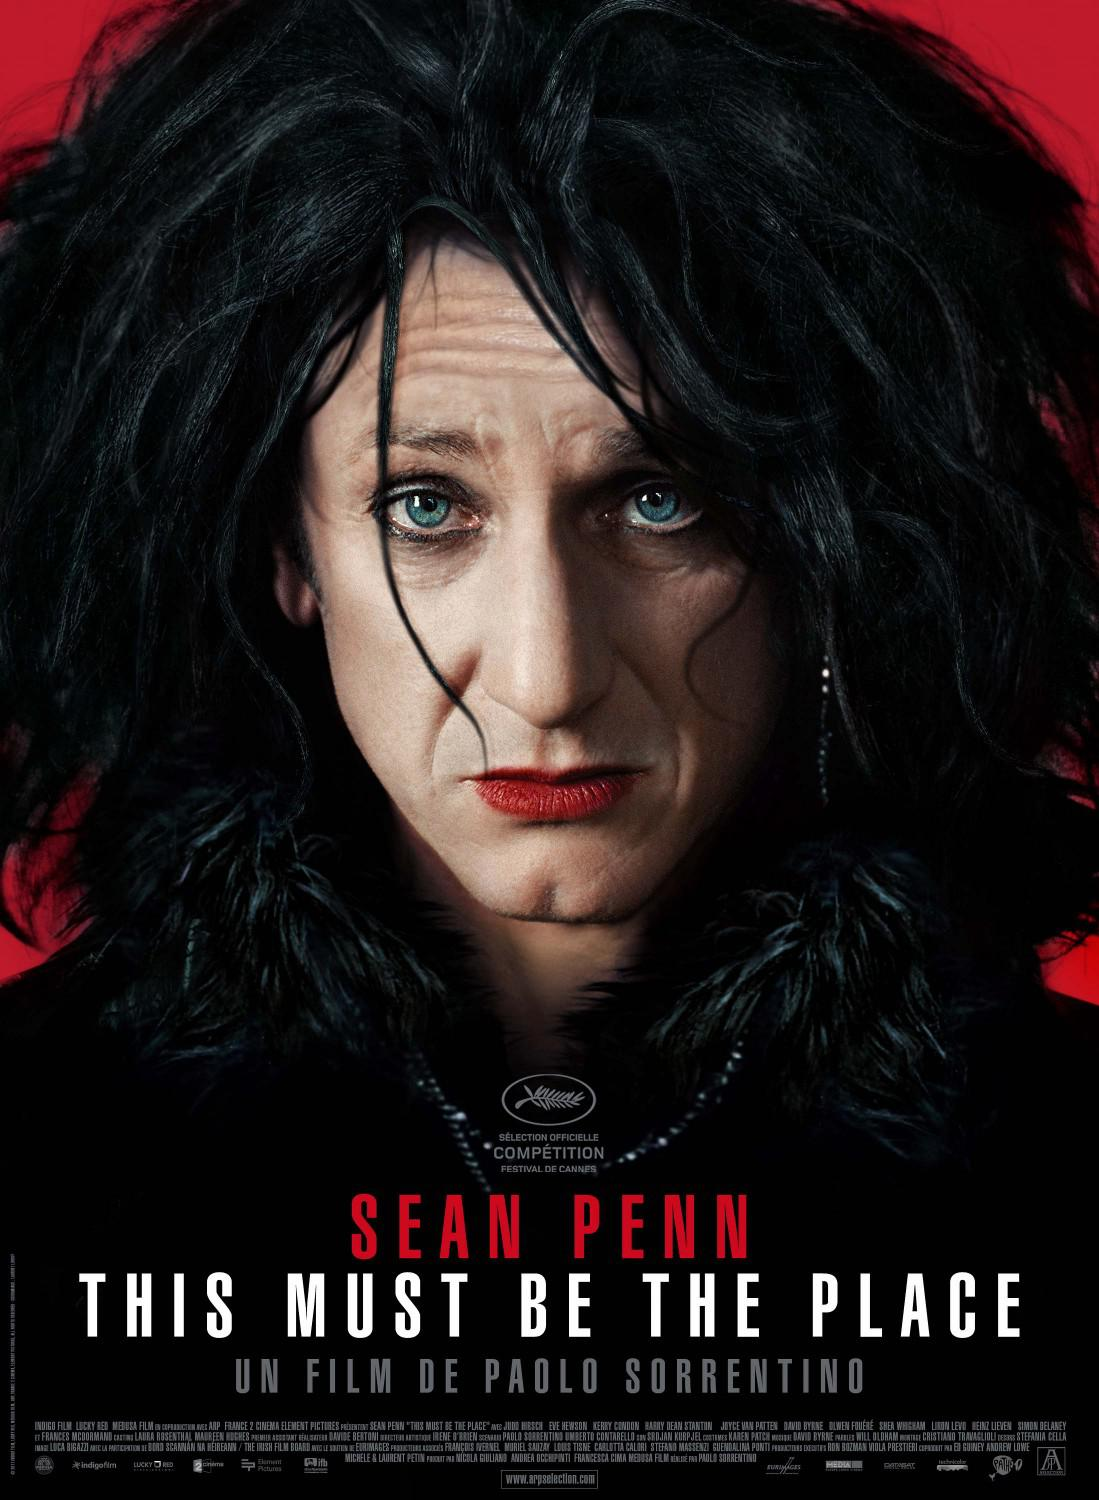 This must be the place - Sean Penn - poster